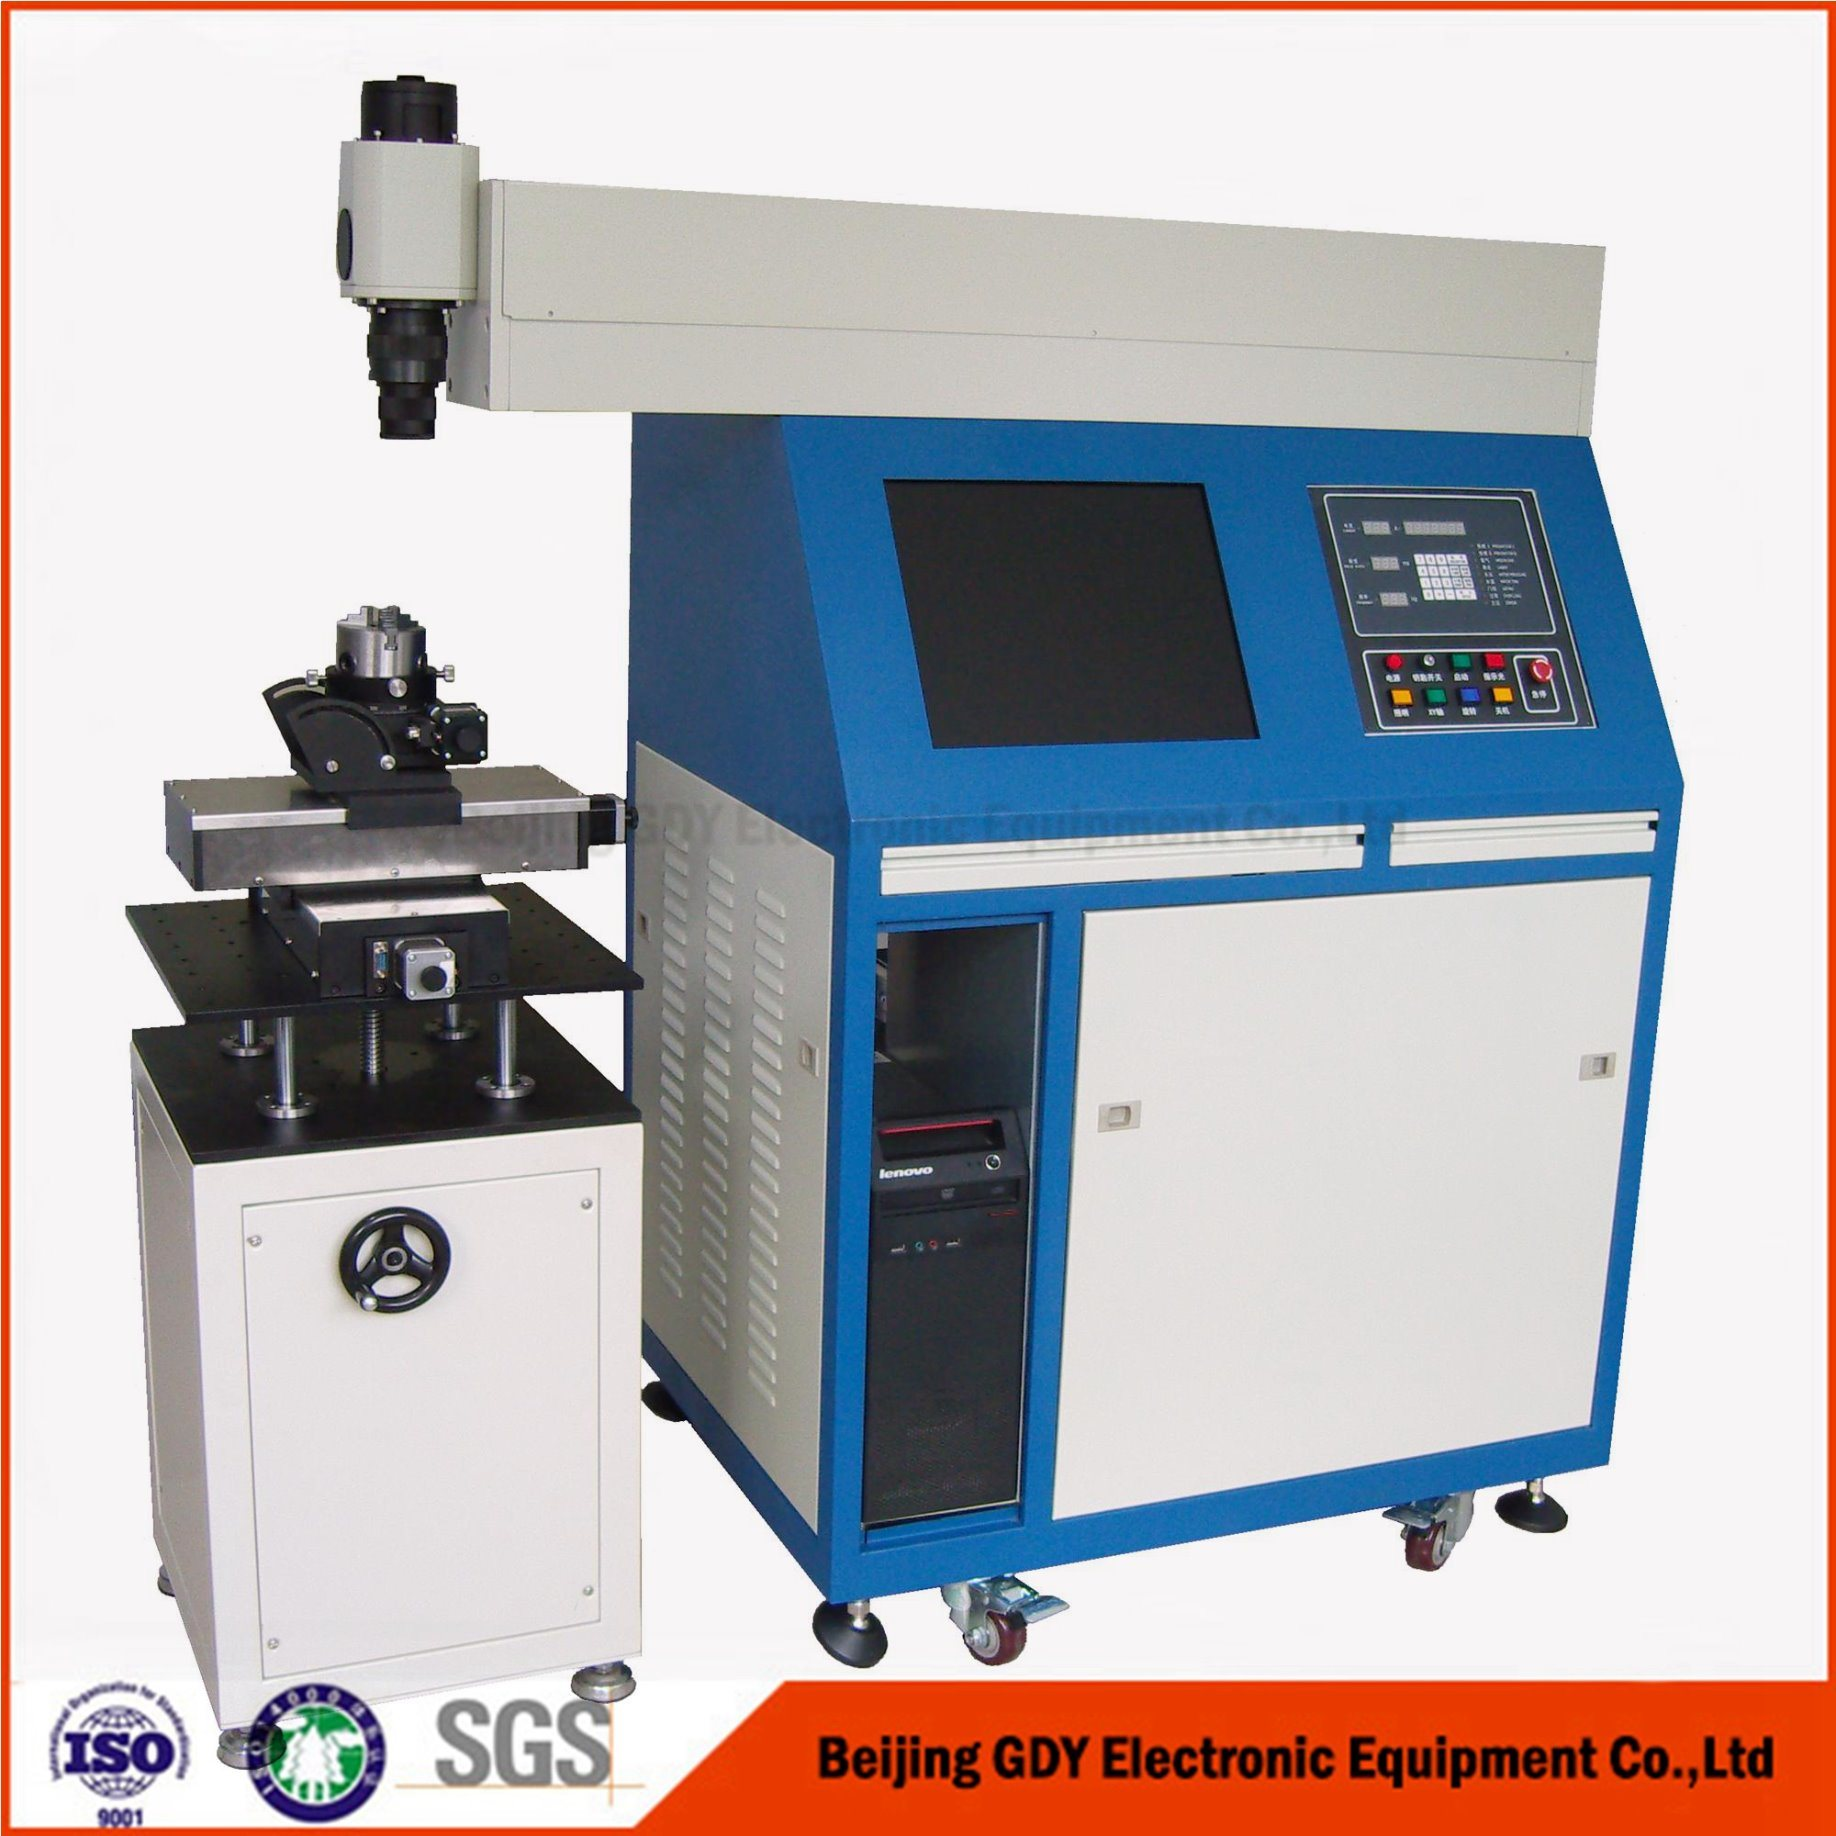 Precision Laser Welding Machine for Hardware